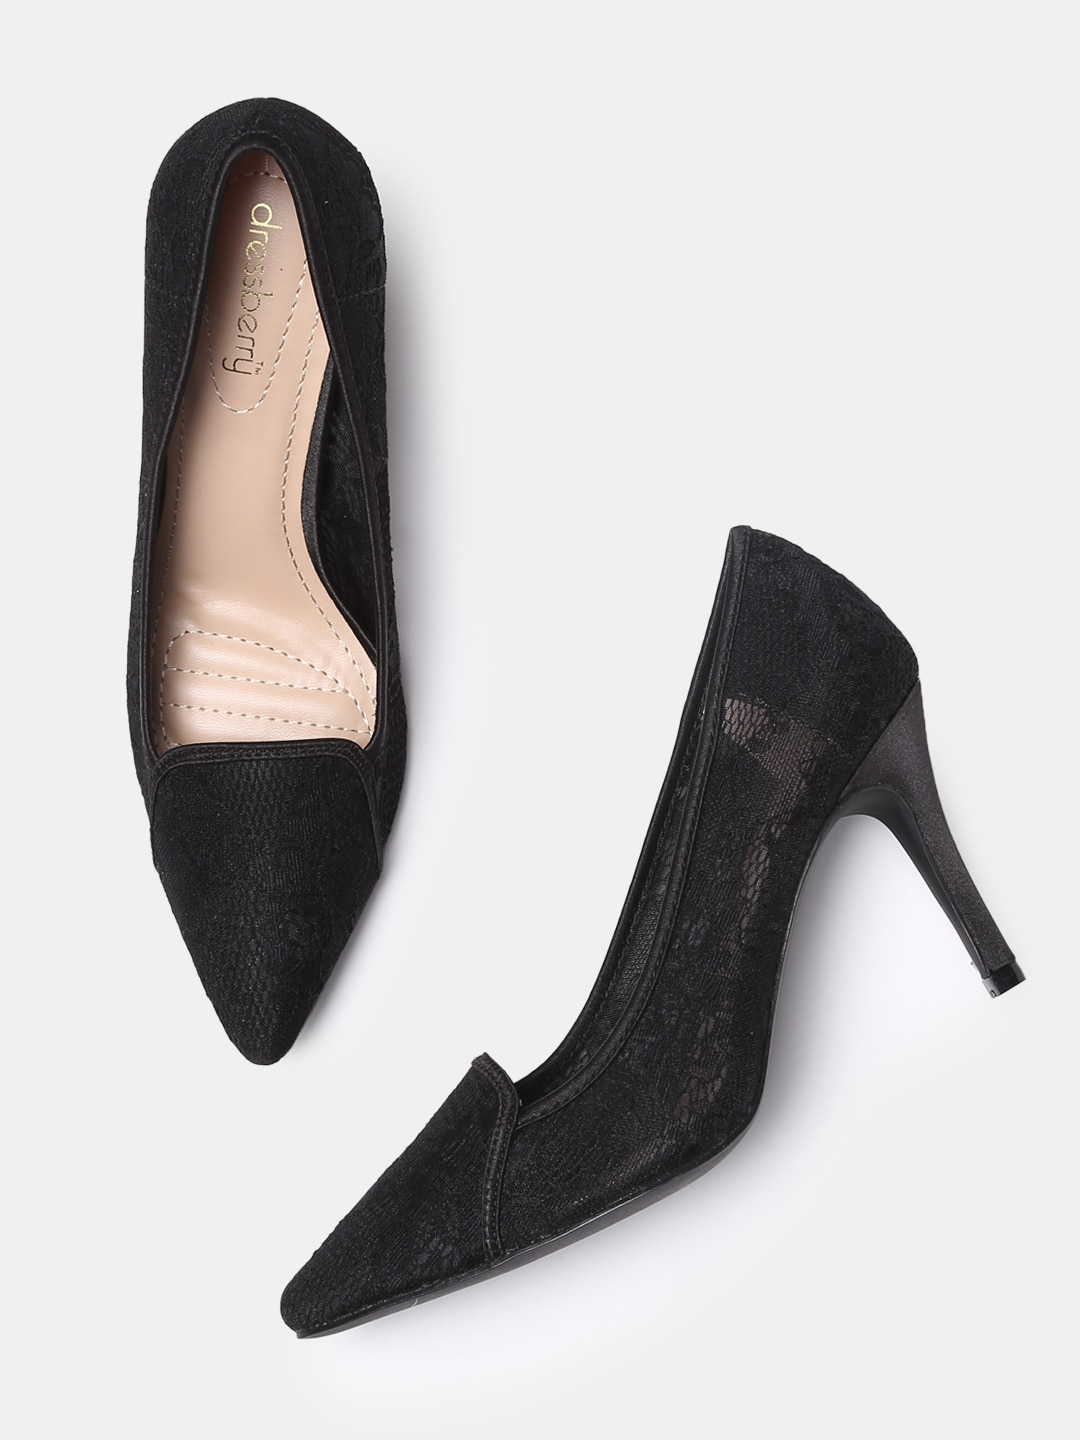 5c707a560b9 Dressberry Pumps Heels - Buy Dressberry Pumps Heels online in India